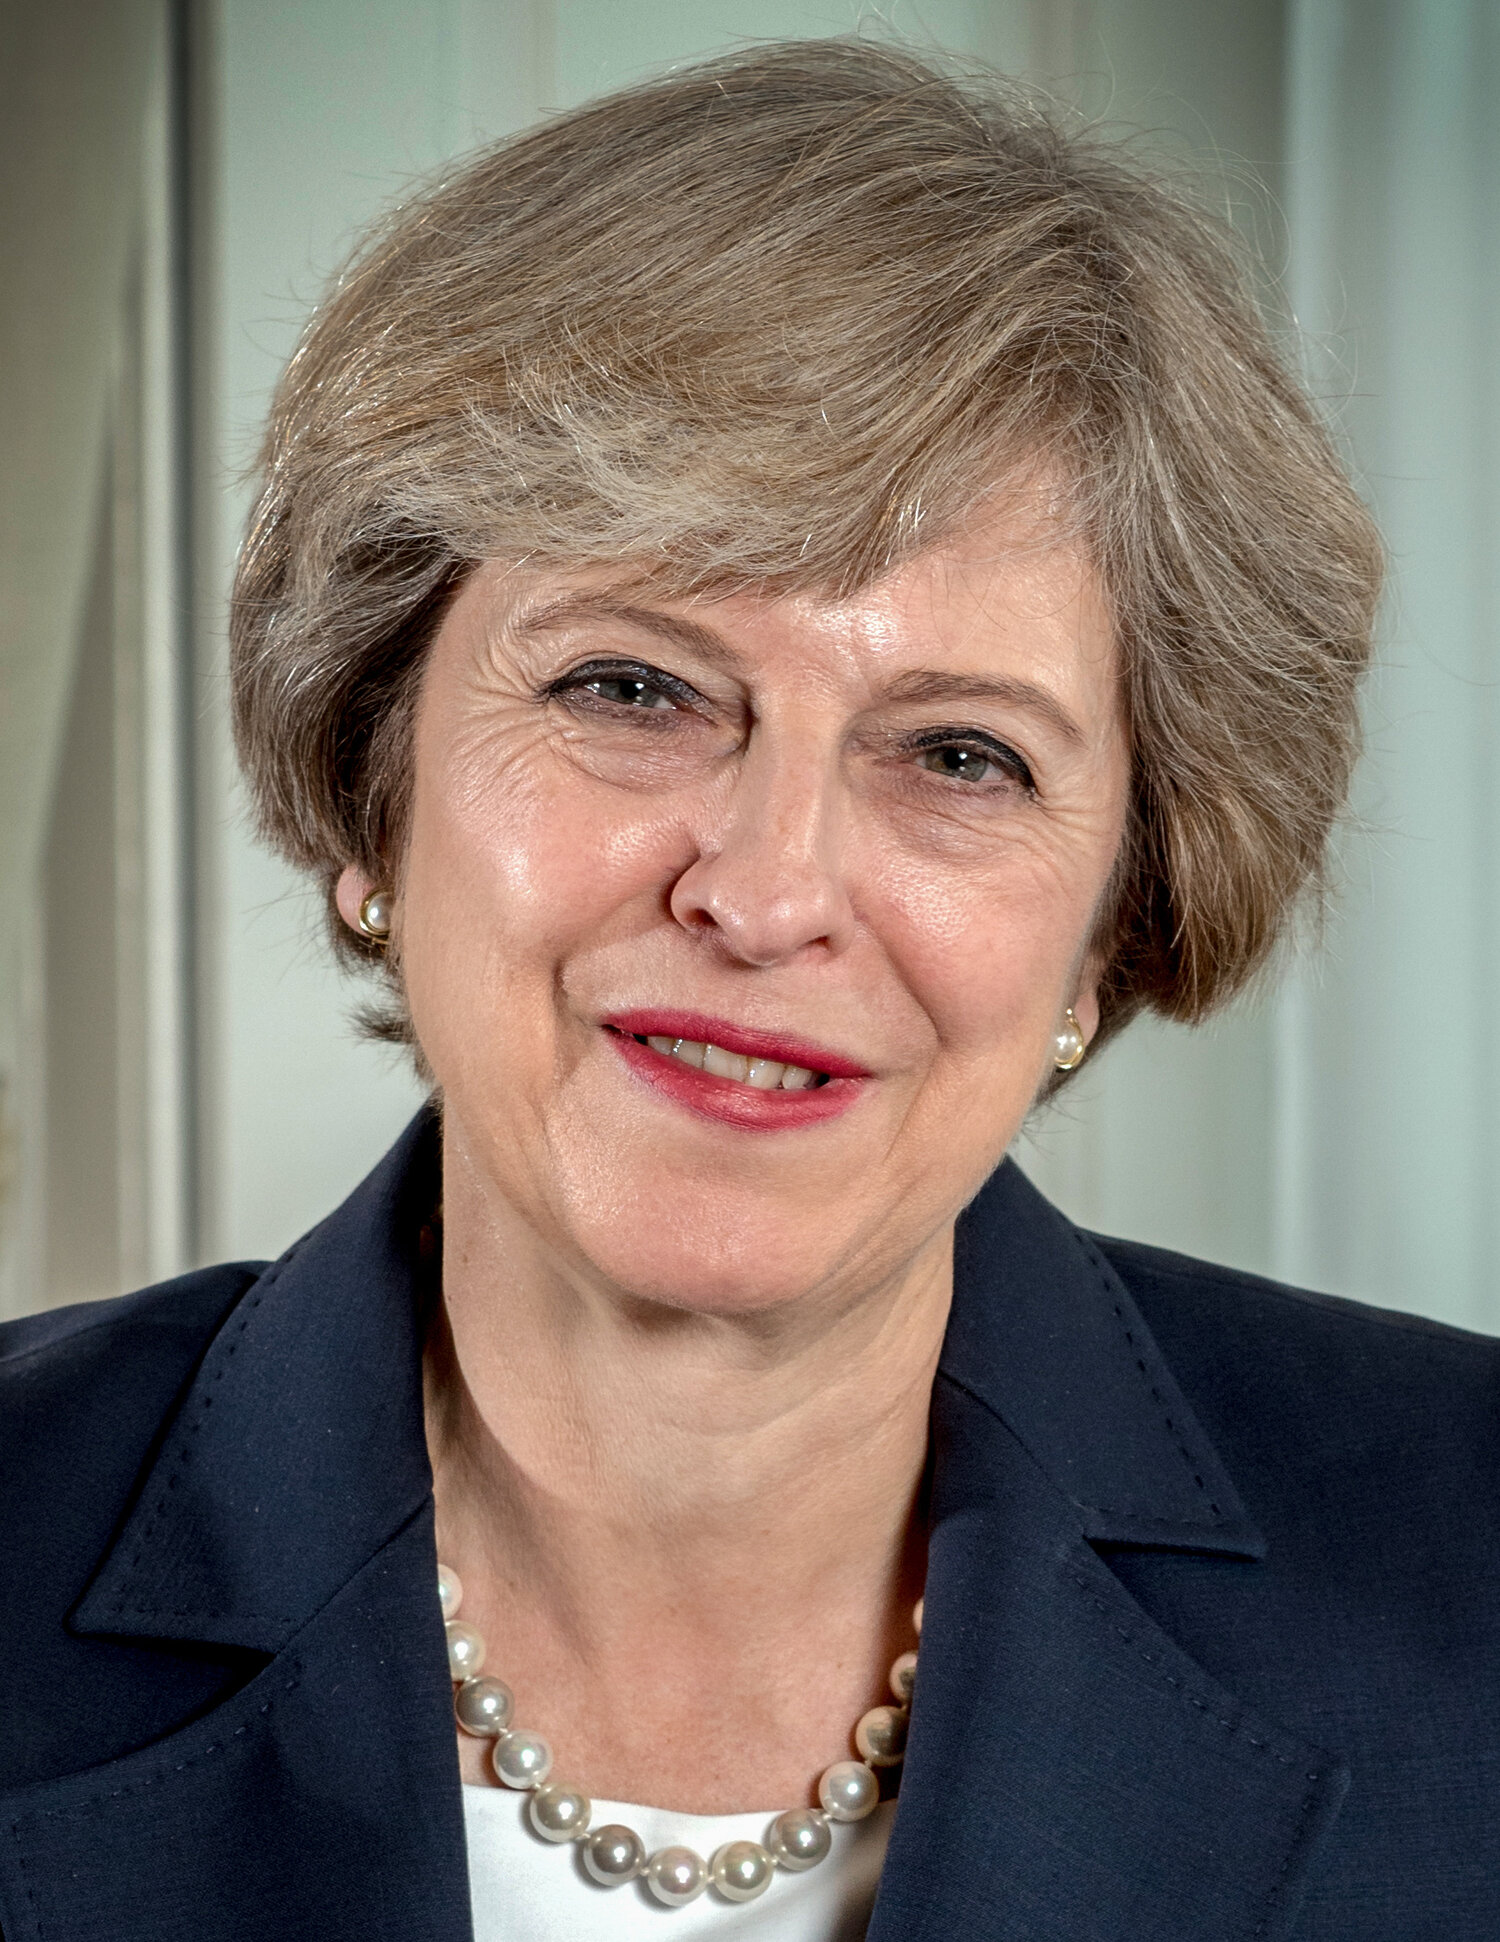 Theresa May. This image is used under a Creative Commons license. Credit:Andrew Parsons.